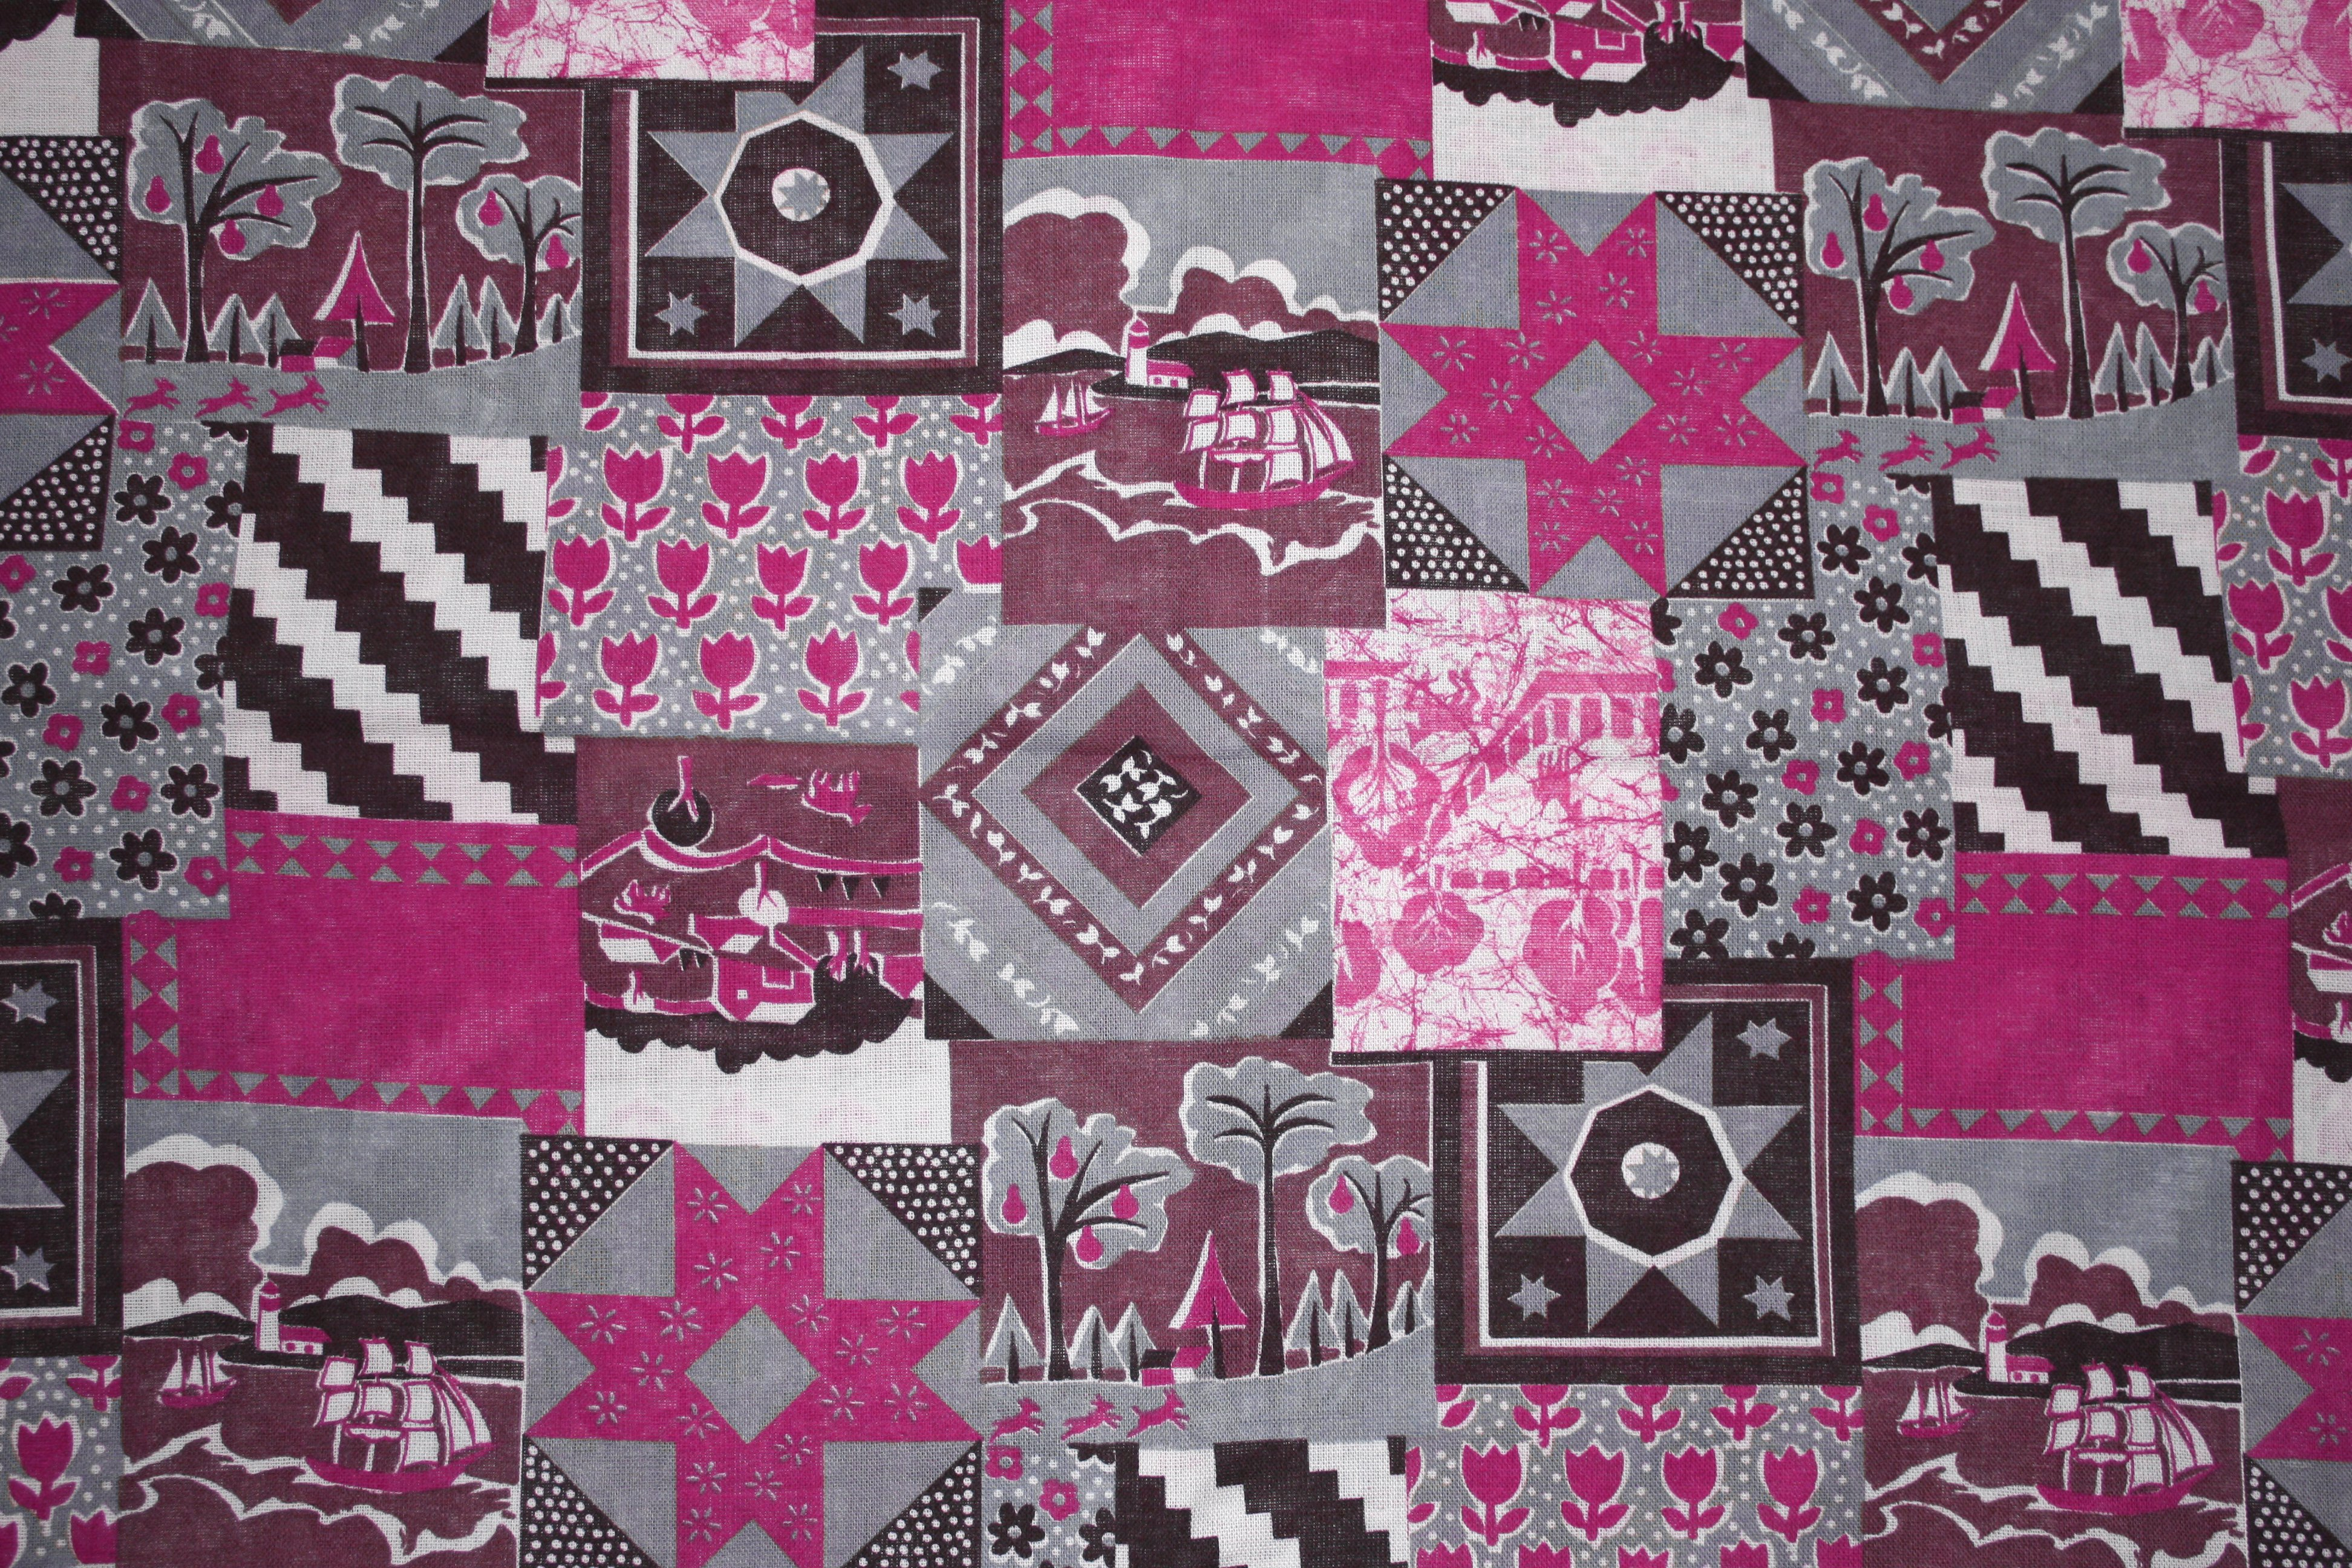 Pink fabric texture free high resolution photo dimensions 3888 - Pink Patchwork Quilt Fabric Texture